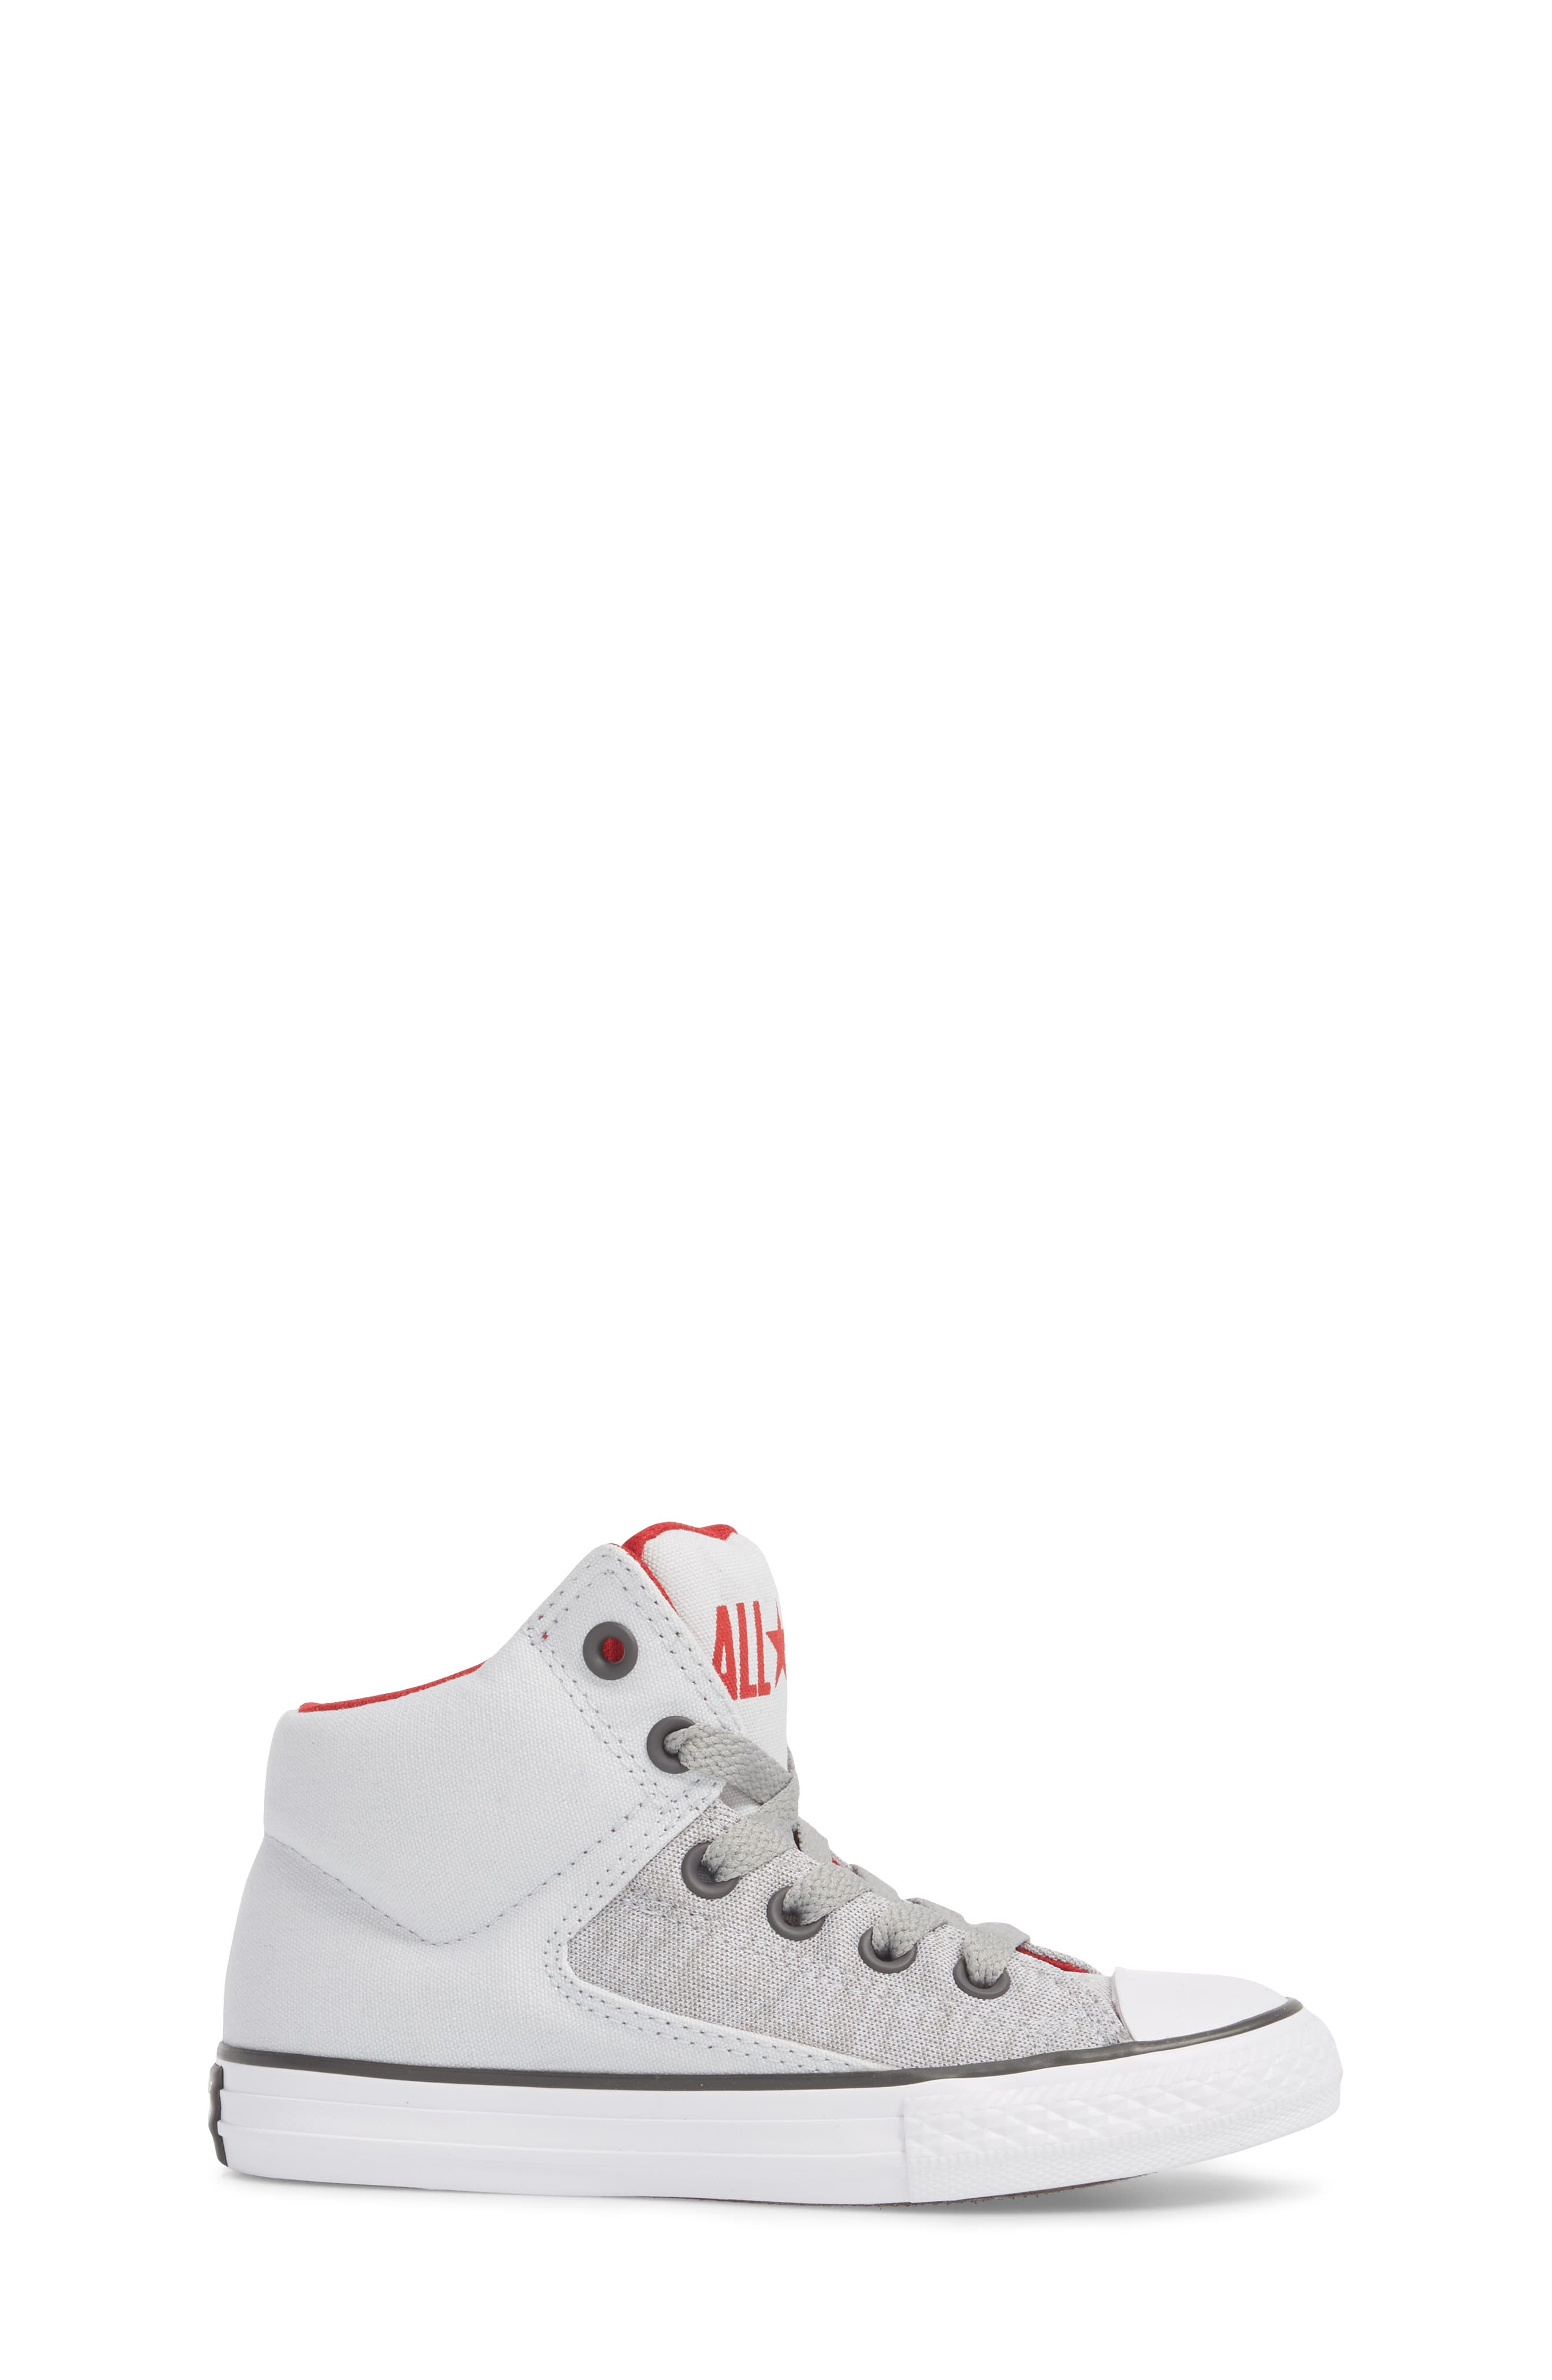 Chuck Taylor<sup>®</sup> All Star<sup>®</sup> High Street High Top Sneaker,                             Alternate thumbnail 6, color,